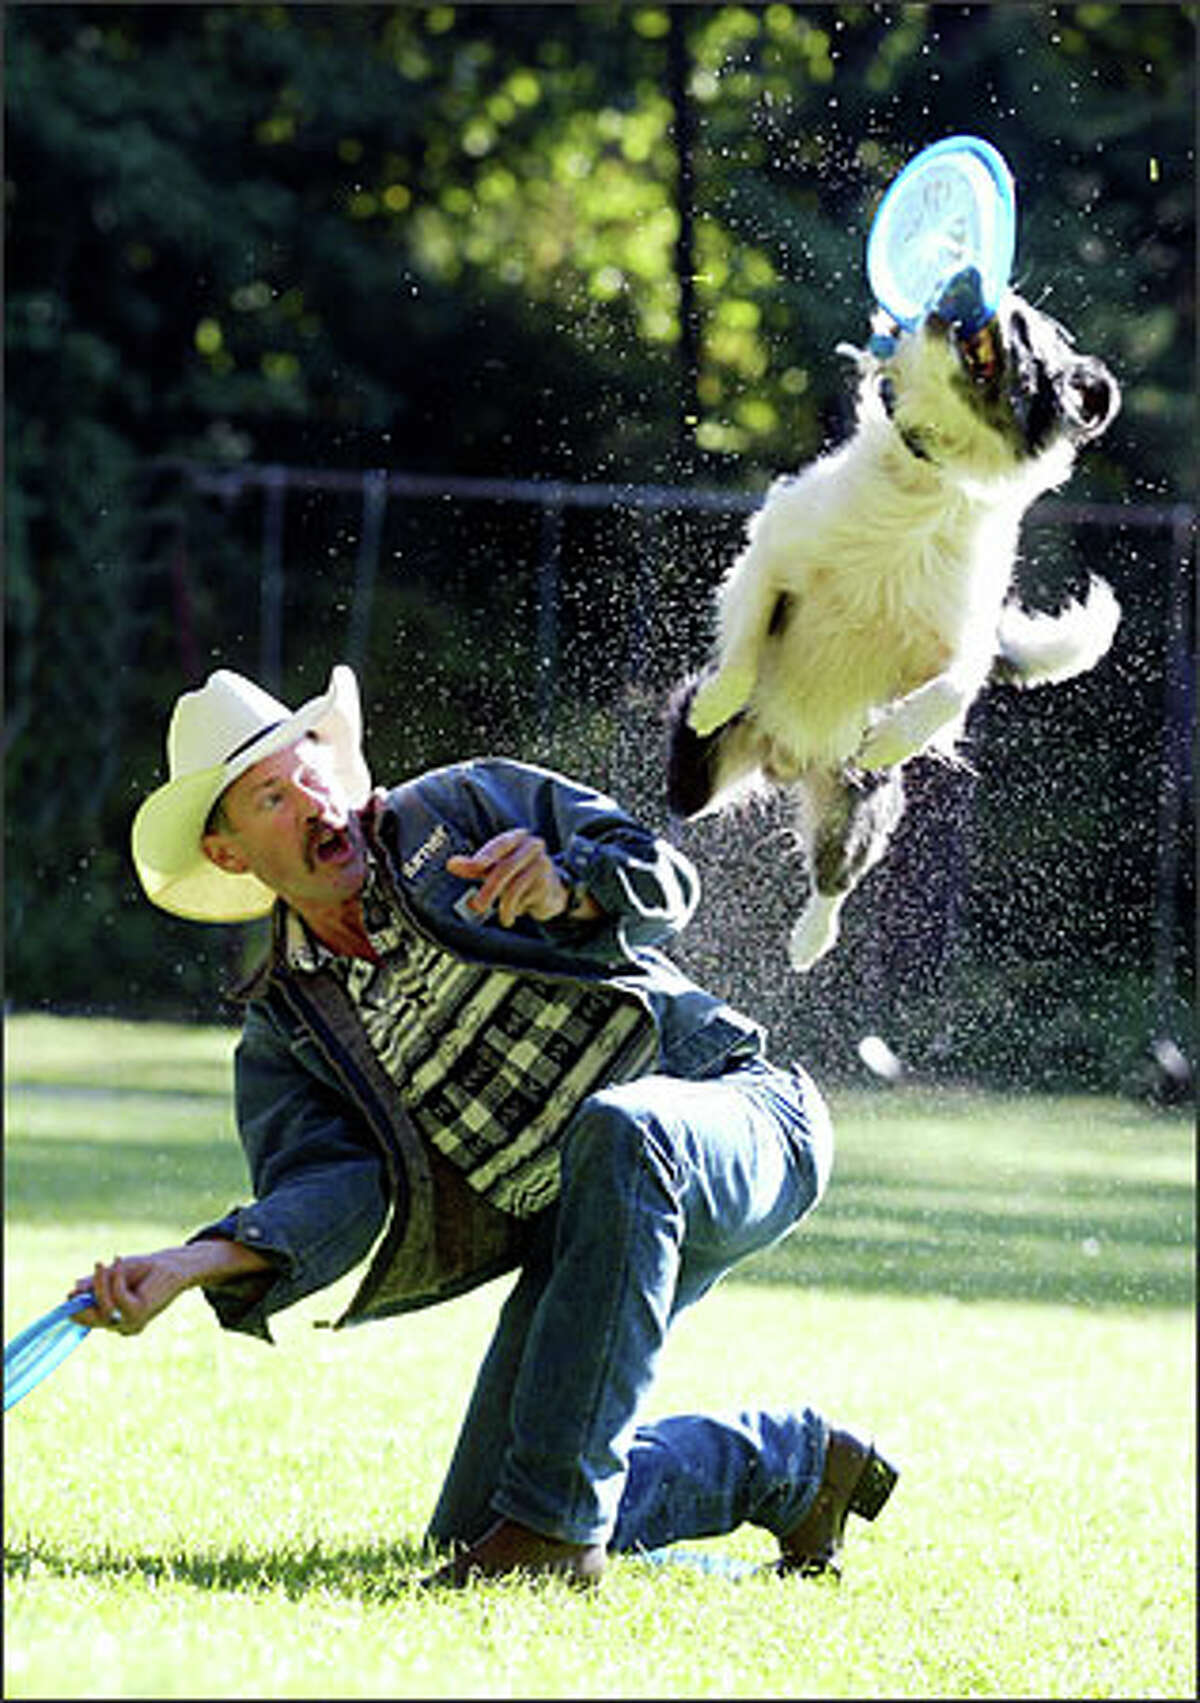 Ray Calhoun of Madrona works out with his border collie mix, Cordell. Calhoun, Cordell and Calhoun's other dog, Cowboy, all headed to the world canine disc championships in Atlanta.Brown: Ray Calhoun is a former professional bull rider who now calls Seattle home. He agrees with me that there should be an exemption to leash laws for border collies. He misses Montana, where dogs run free.